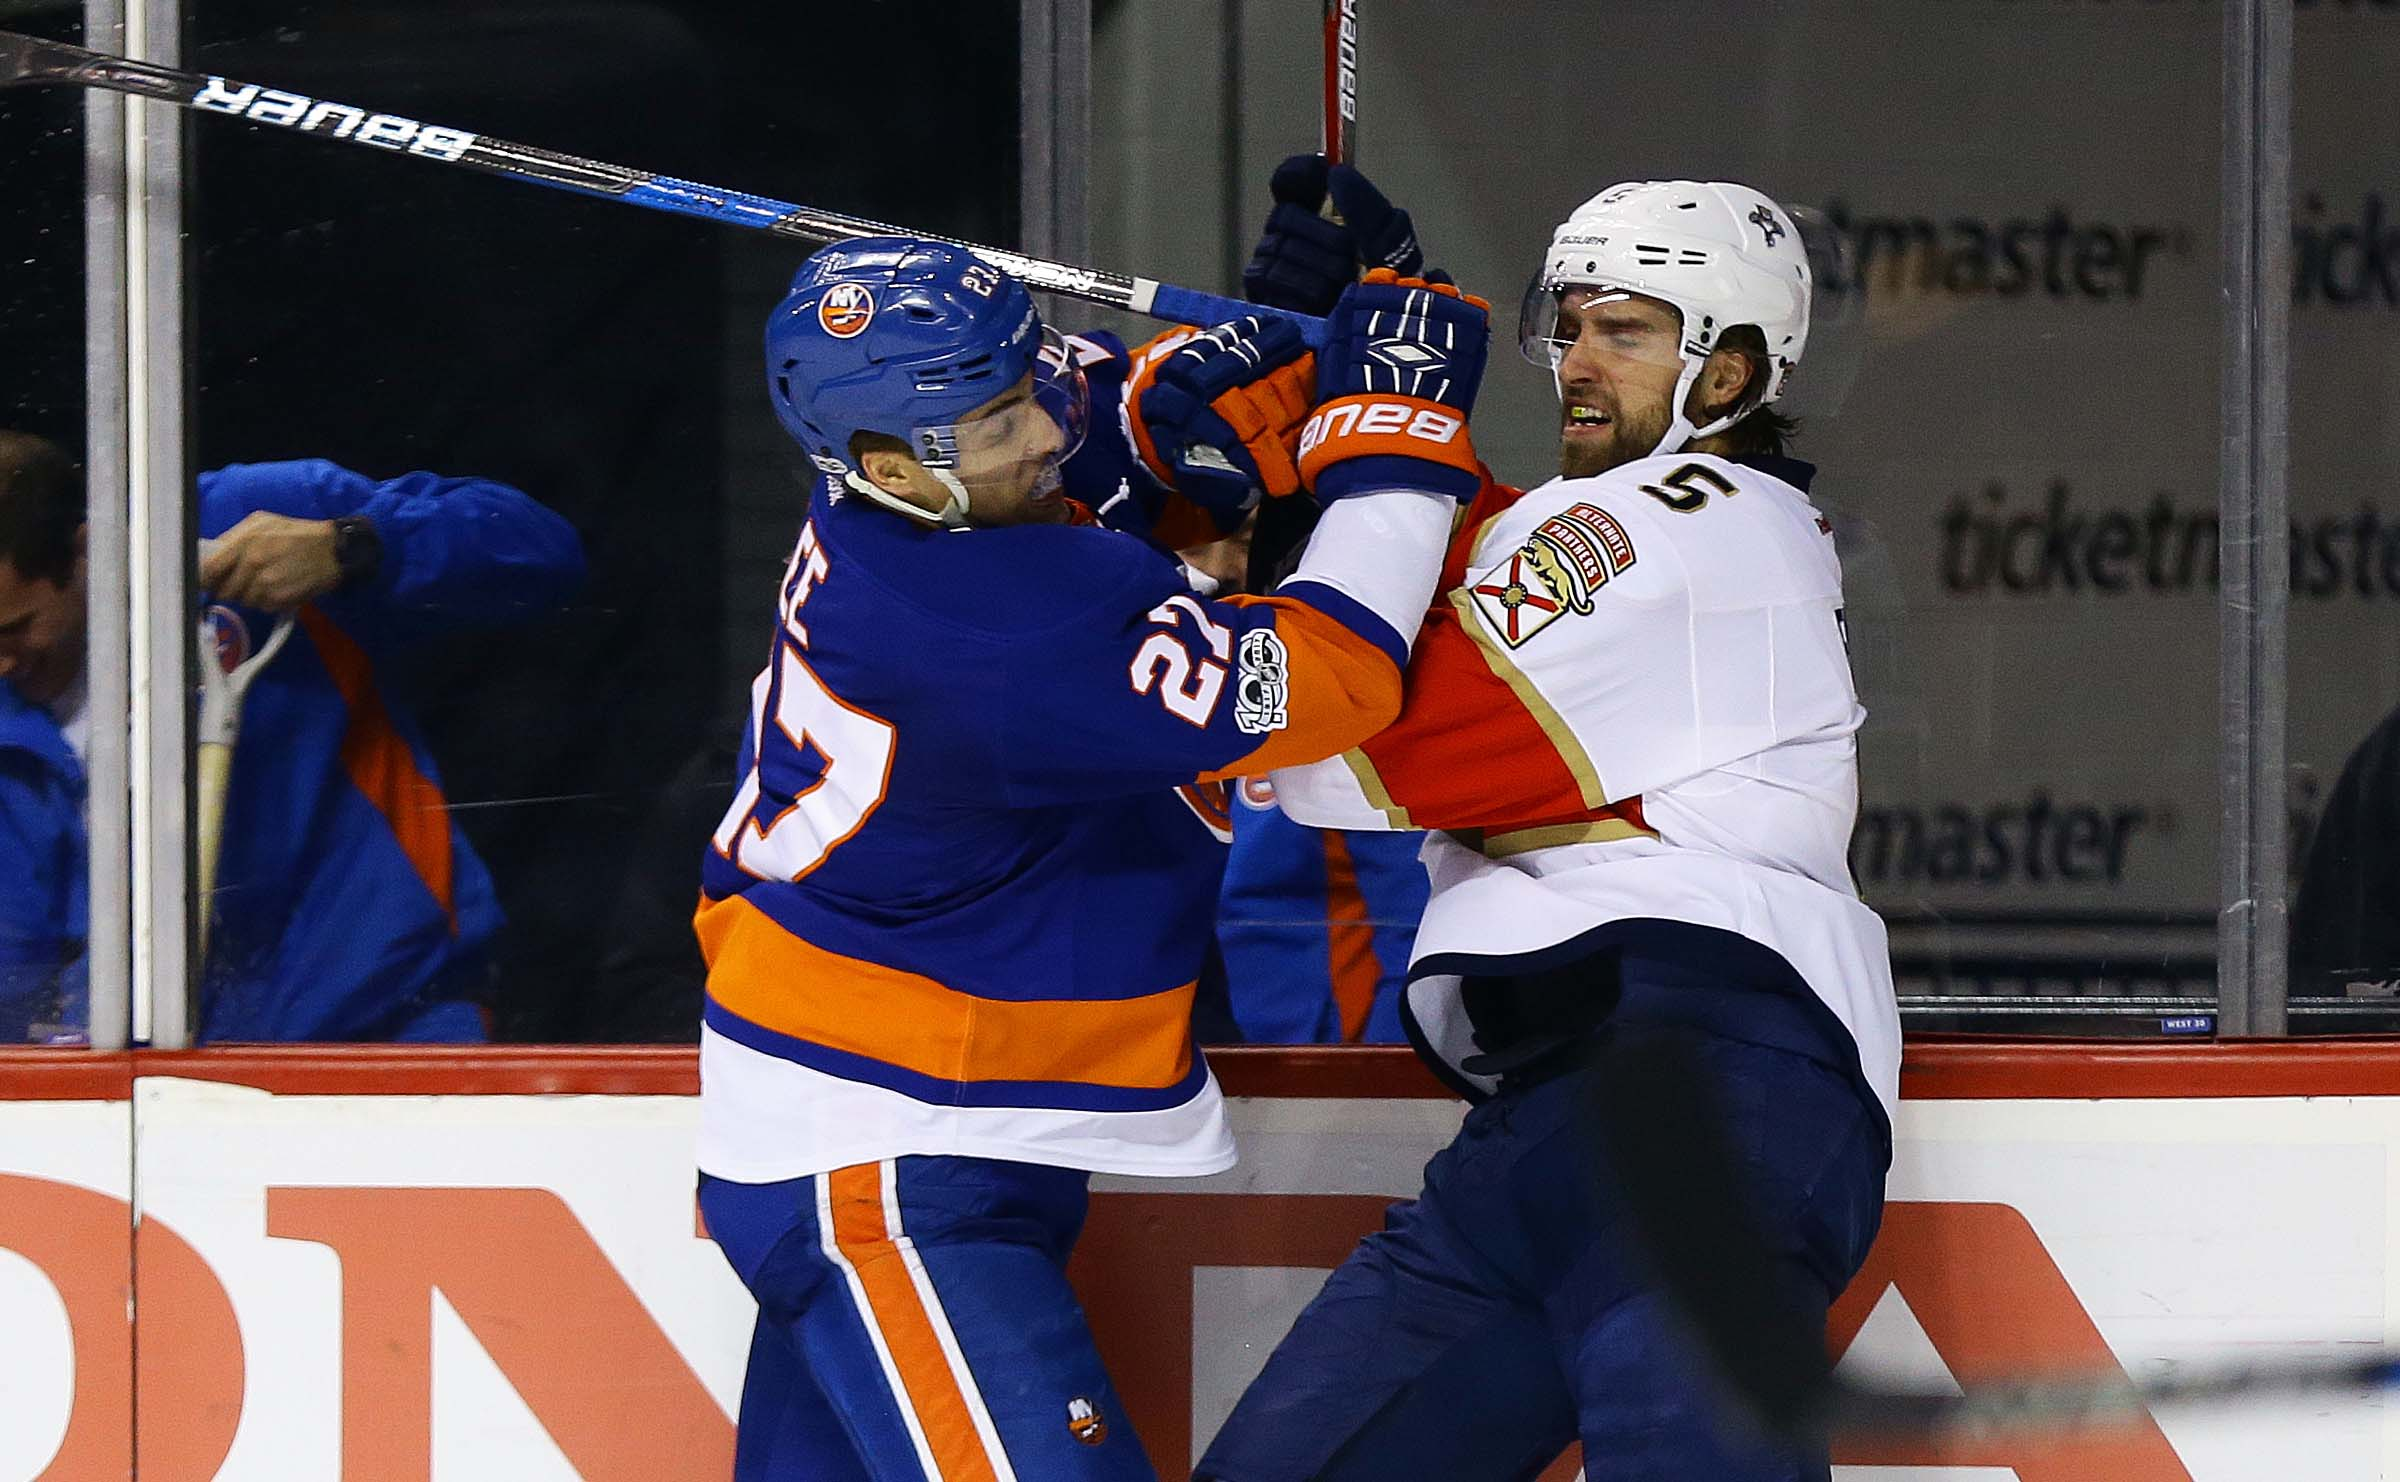 Jan 11, 2017; Brooklyn, NY, USA; New York Islanders left wing Anders Lee (27) and Florida Panthers defenseman Aaron Ekblad (5) come together at the boards during the second period at Barclays Center. Mandatory Credit: Andy Marlin-USA TODAY Sports